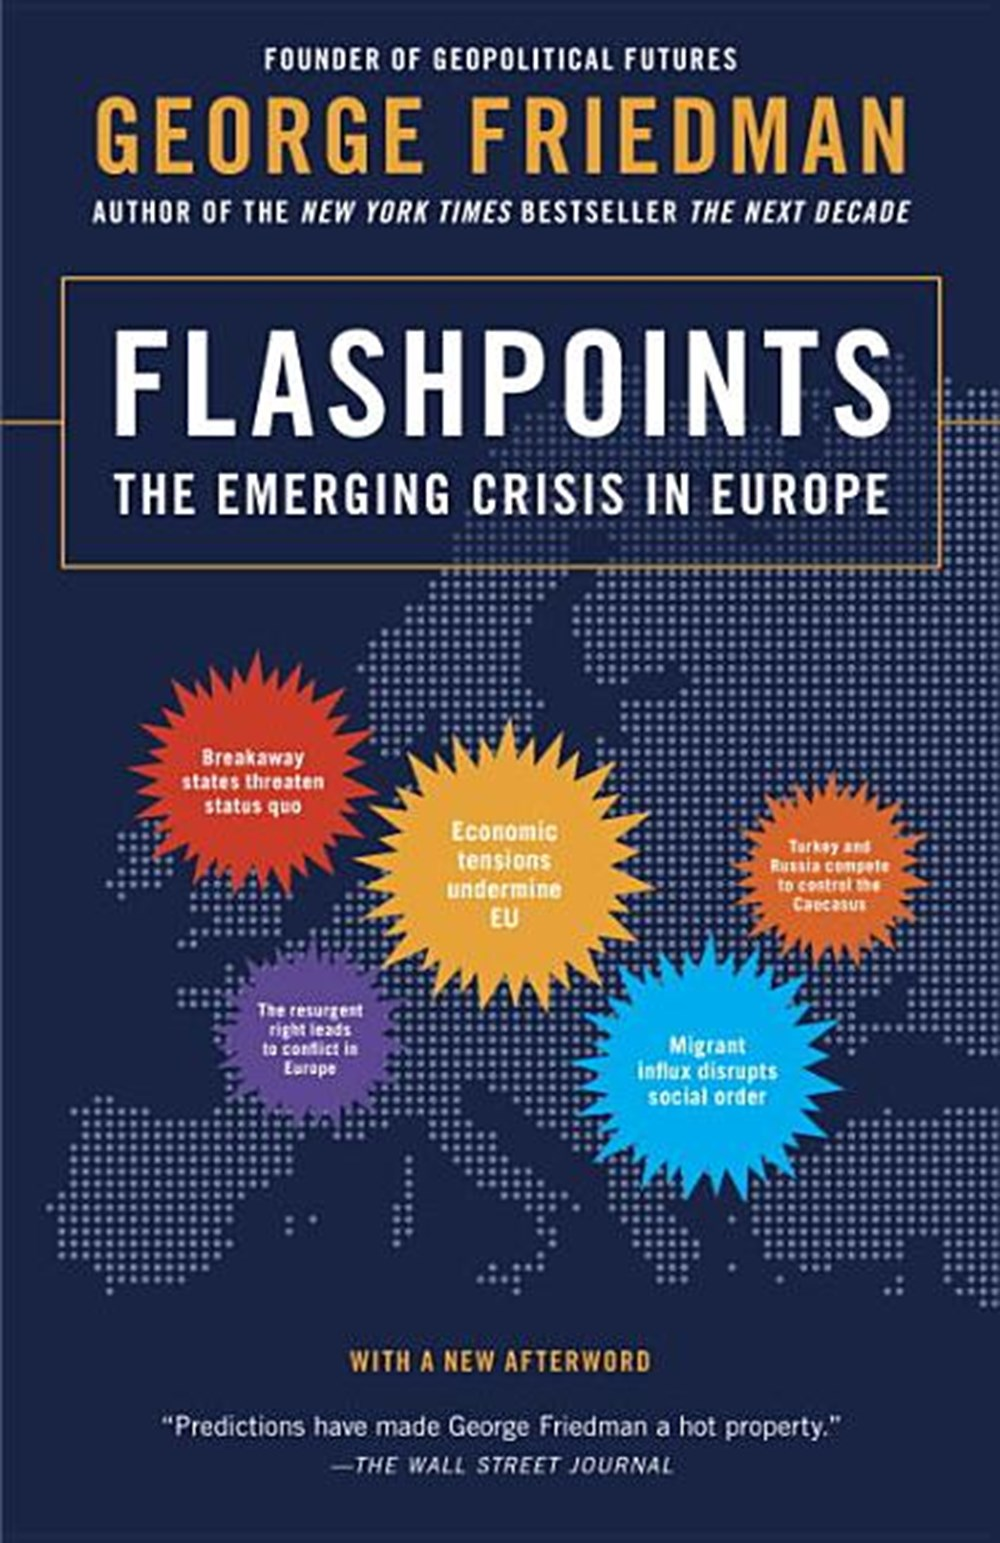 Flashpoints The Emerging Crisis in Europe